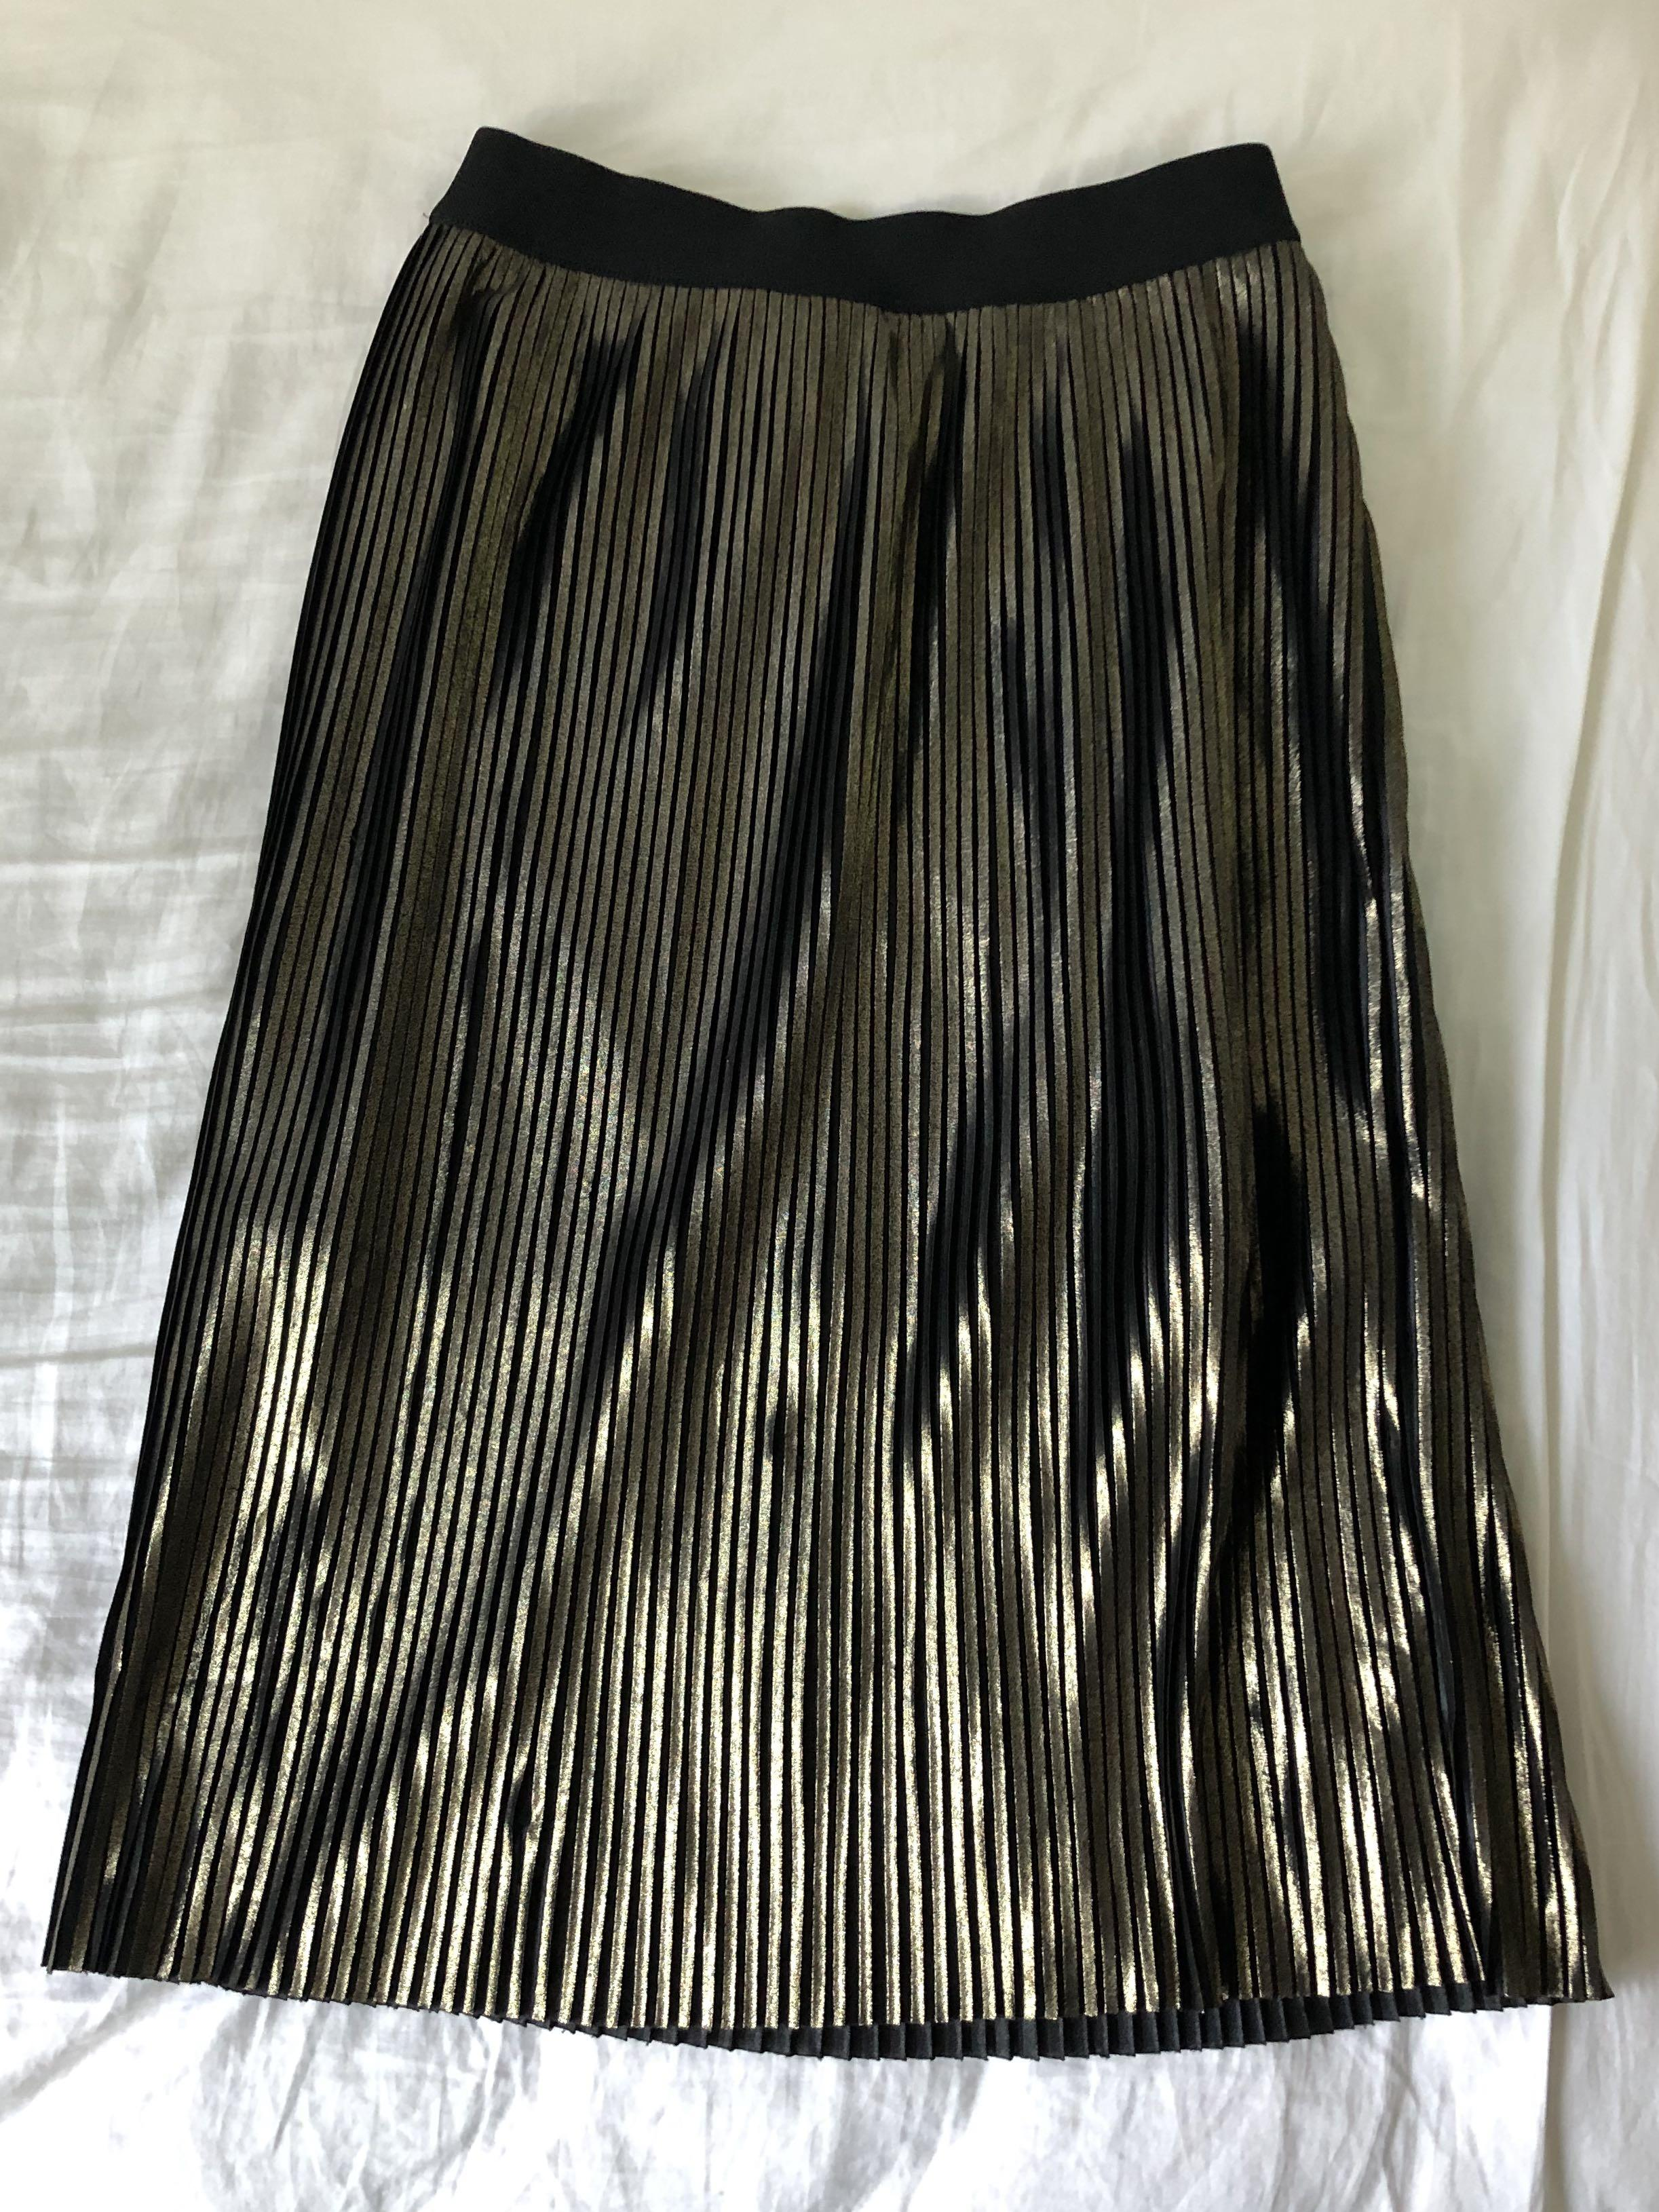 Black & gold metallic pleated midi skirt